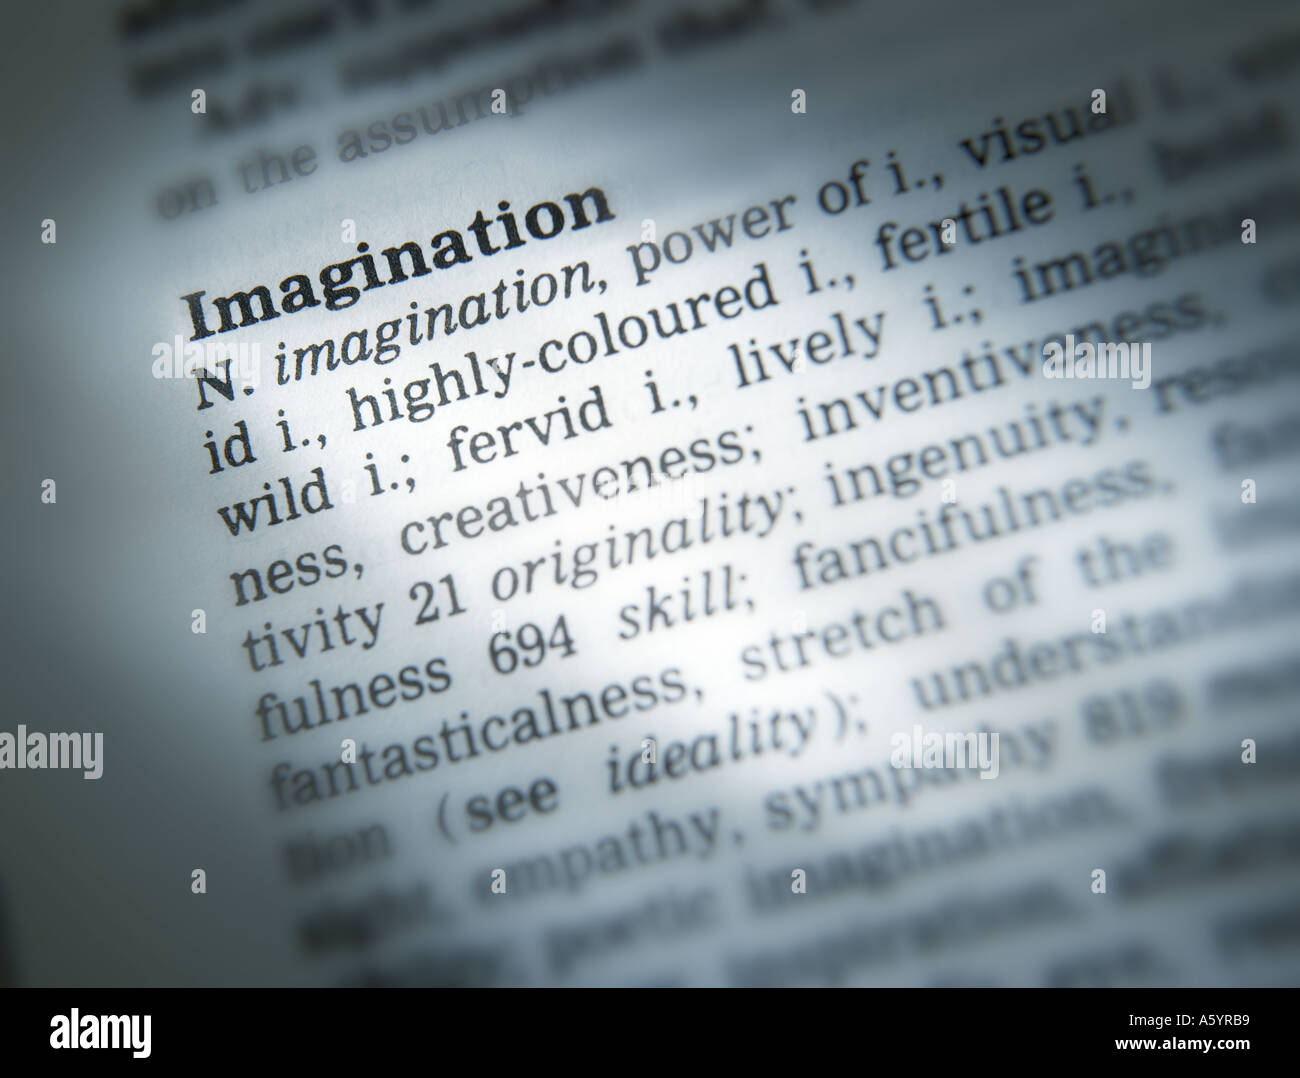 THESAURUS PAGE SHOWING DEFINITION OF WORD IMAGINATION